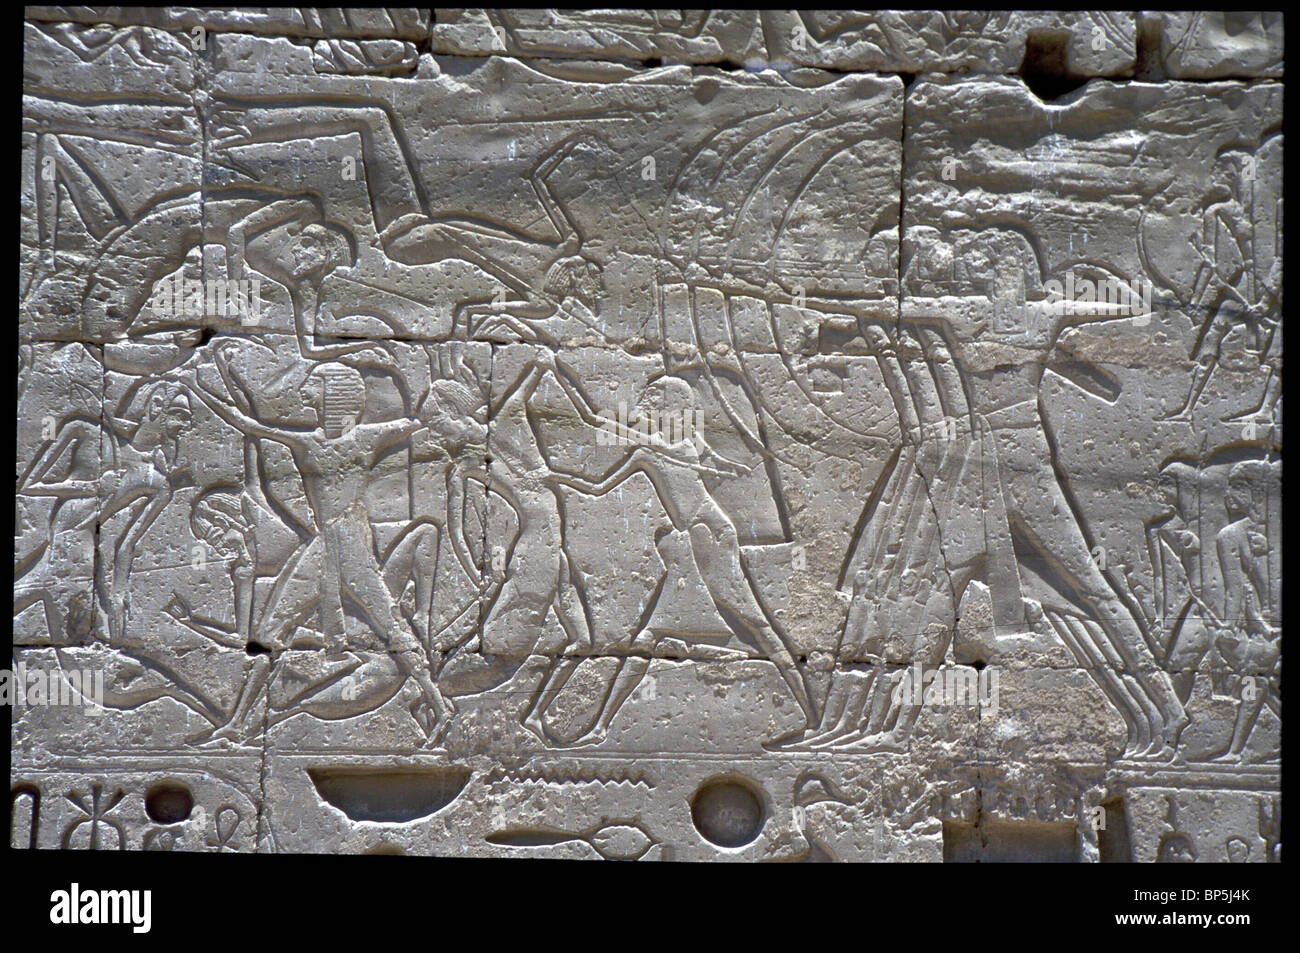 3553. BATTLE SCENE; CONQUEST OF A SYRIAN CITY. RELIEF FROM THE RAMSEUM, THE TEMPLE OF PHAROH RAMSES II (1301 - 1234 - Stock Image